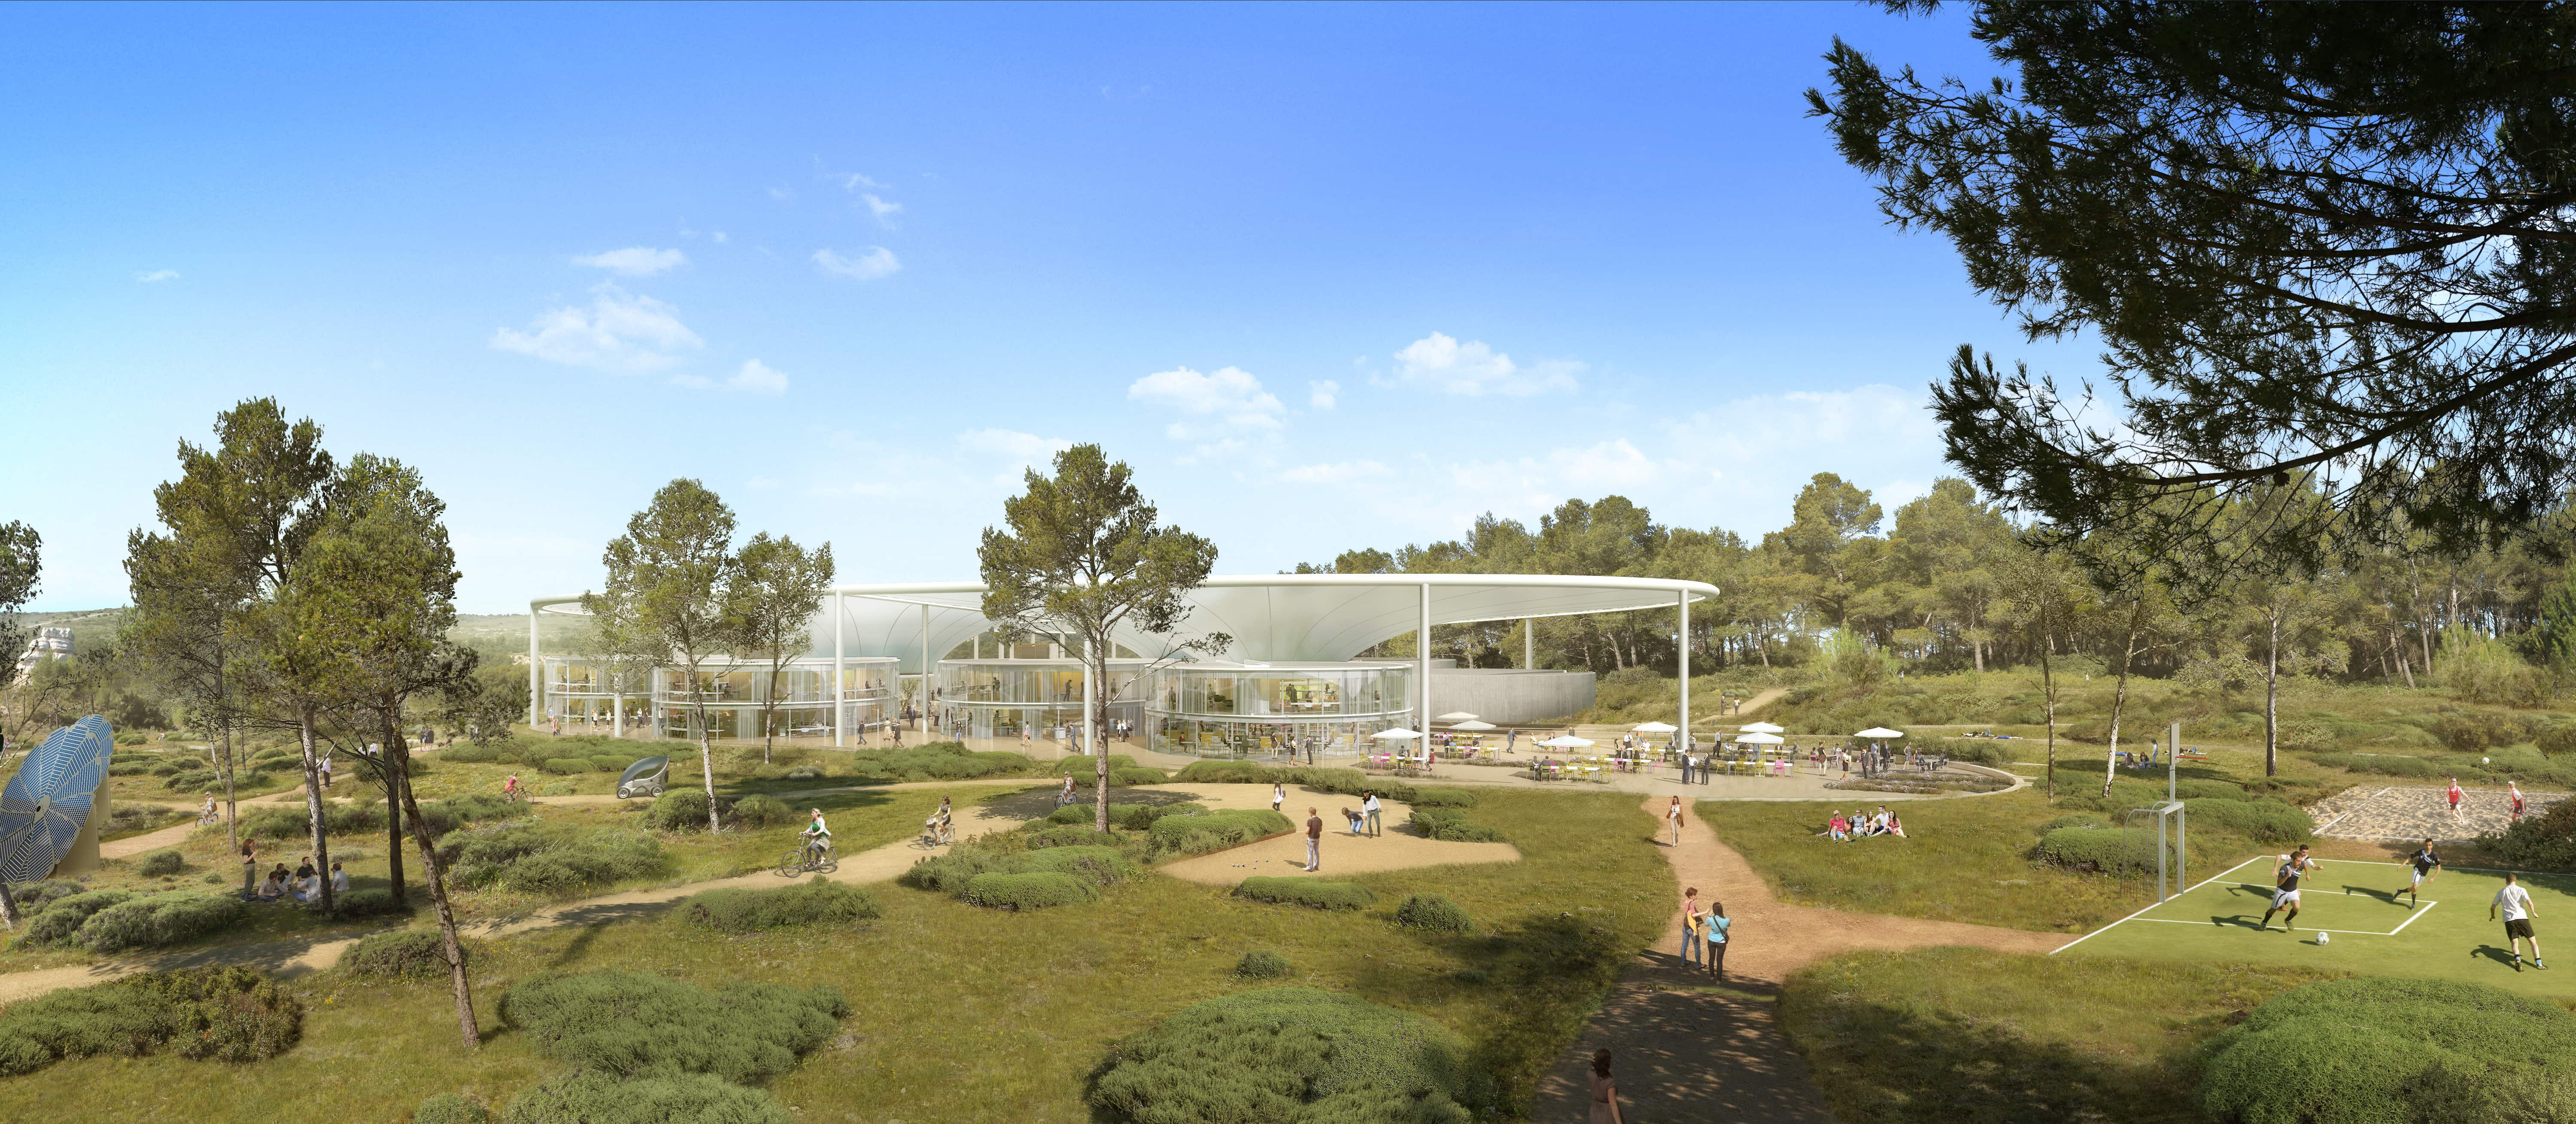 Construction Aix En Provence how aix-en-provence is leading the way for startups in europe